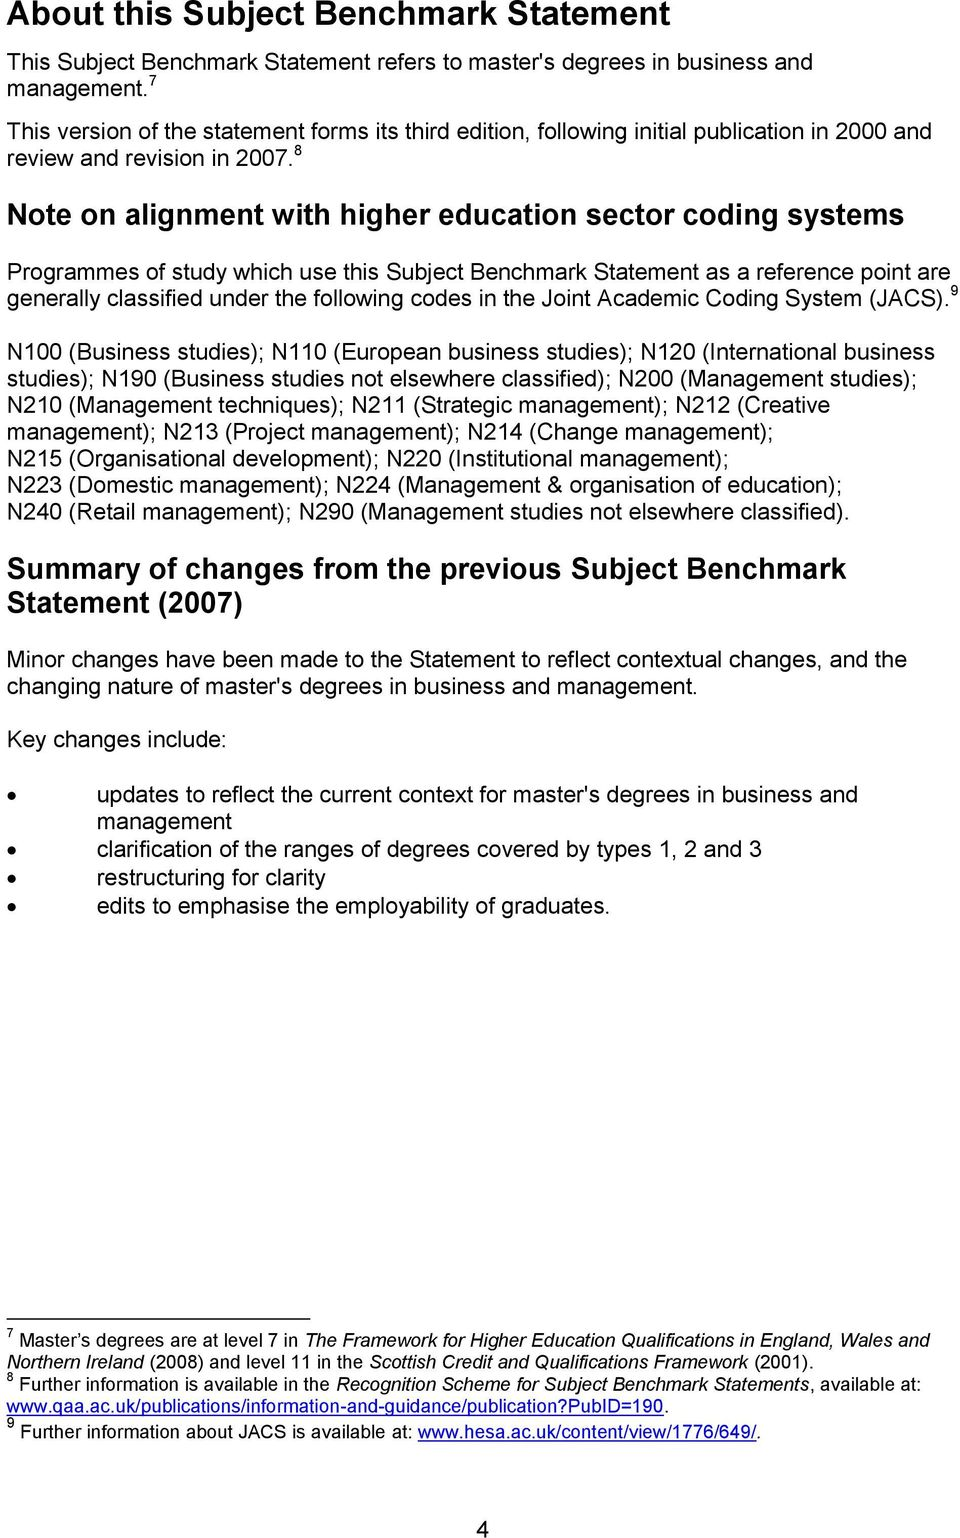 8 Note on alignment with higher education sector coding systems Programmes of study which use this Subject Benchmark Statement as a reference point are generally classified under the following codes